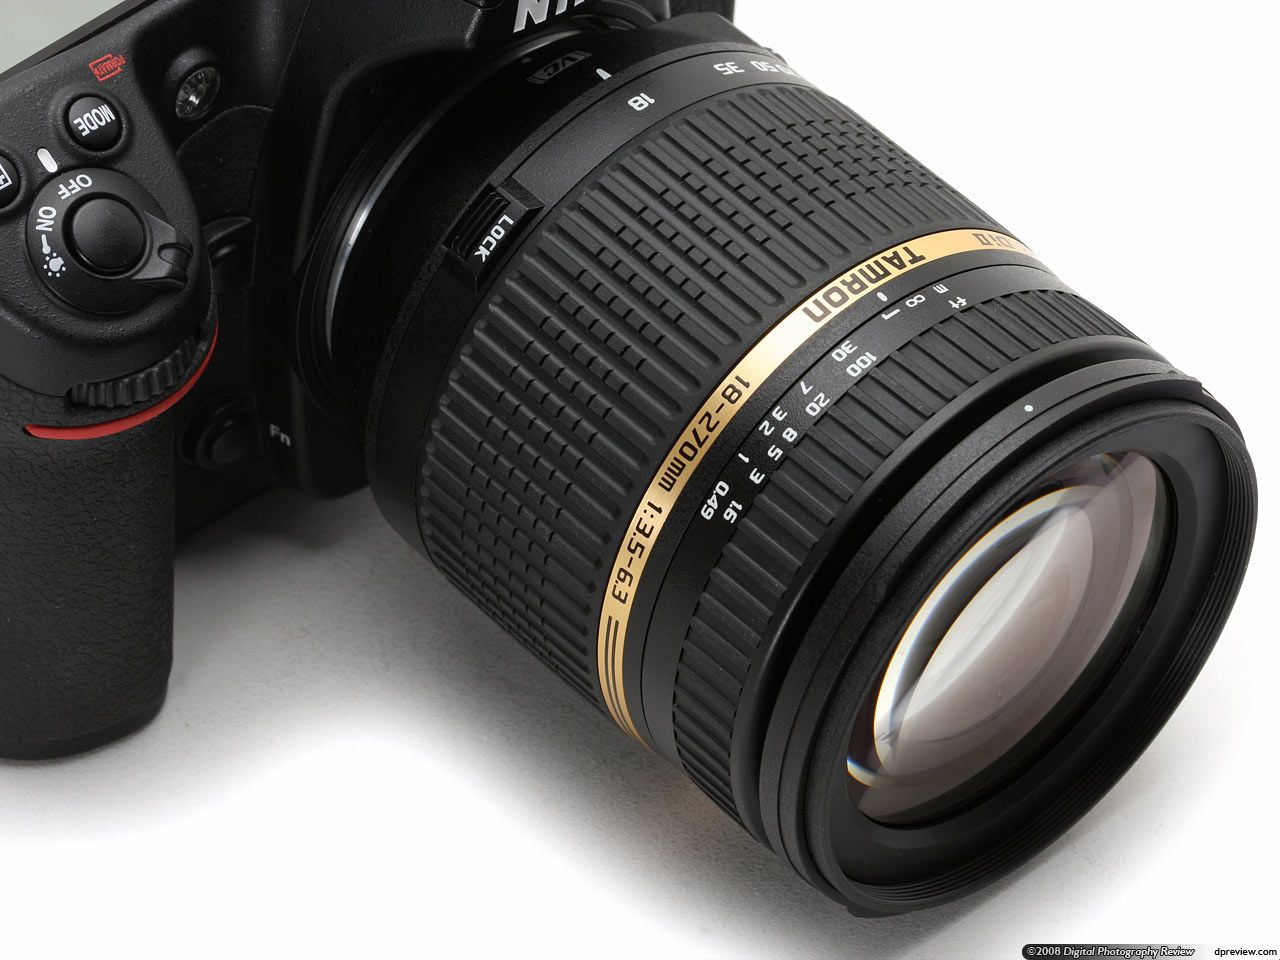 The latest design to emerge from the stable of superzoom experts Tamron, the AF 18-270mm f/3.5-6.3 Di II VC LD Aspherical (IF) MACRO was announced in July 2008. The length of the zoom range is almost as remarkable as that of the lens's name itself, with the 15x ratio covering everything from a 28mm equivalent wideangle to a 420mm equivalent telephoto. This is unprecedented in terms of SLR optics, and is clearly aimed at users upgrading from superzoom digicams who require a similar focal…